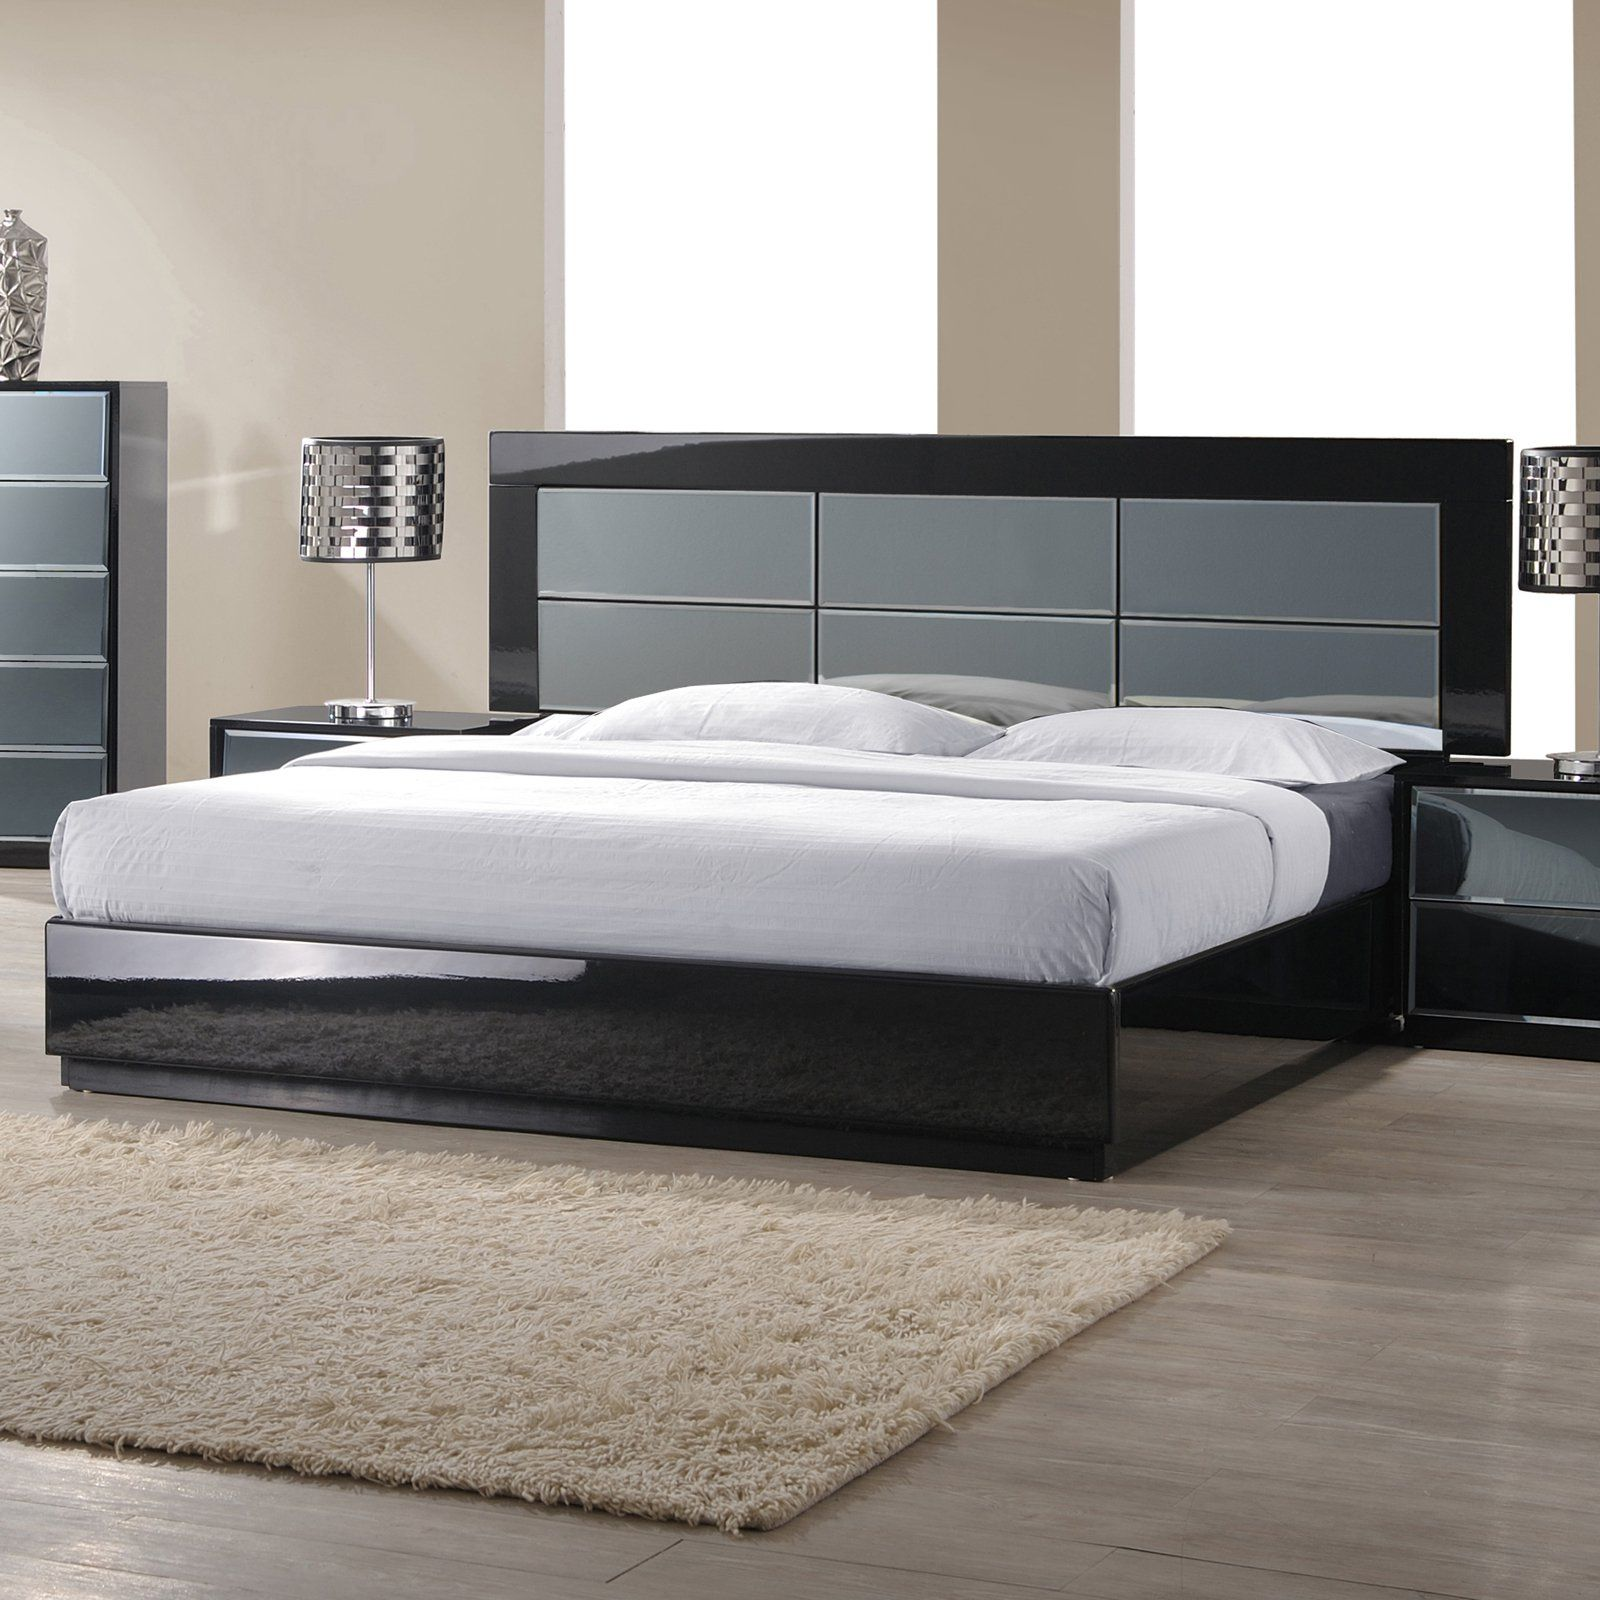 Chintaly Venice Platform Bed CTY1528 Chintaly